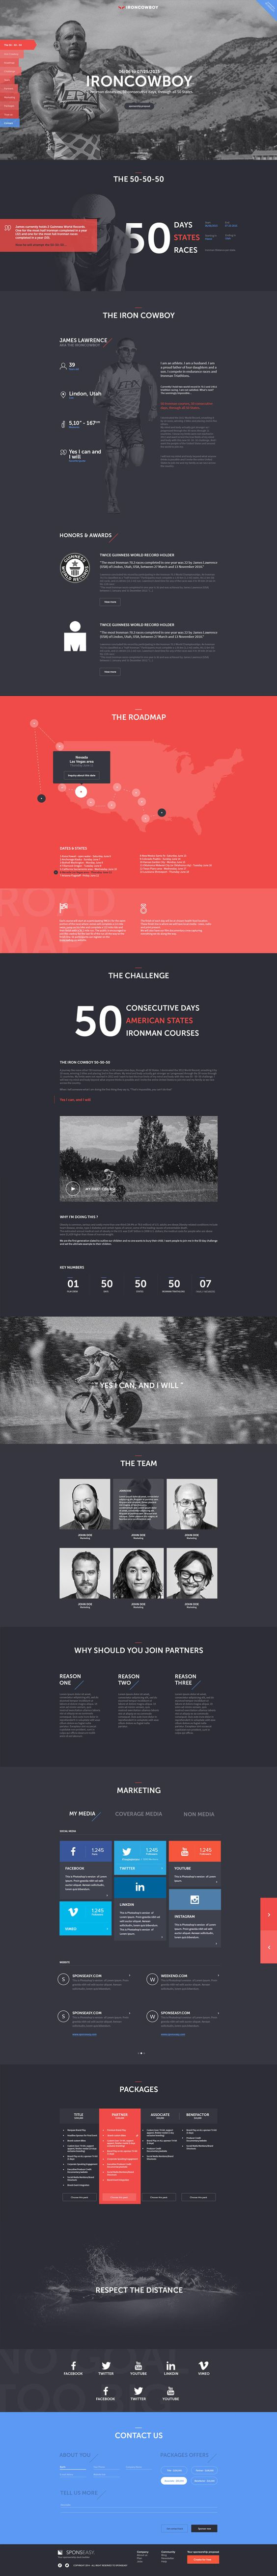 Modern and Trendy Web Designs